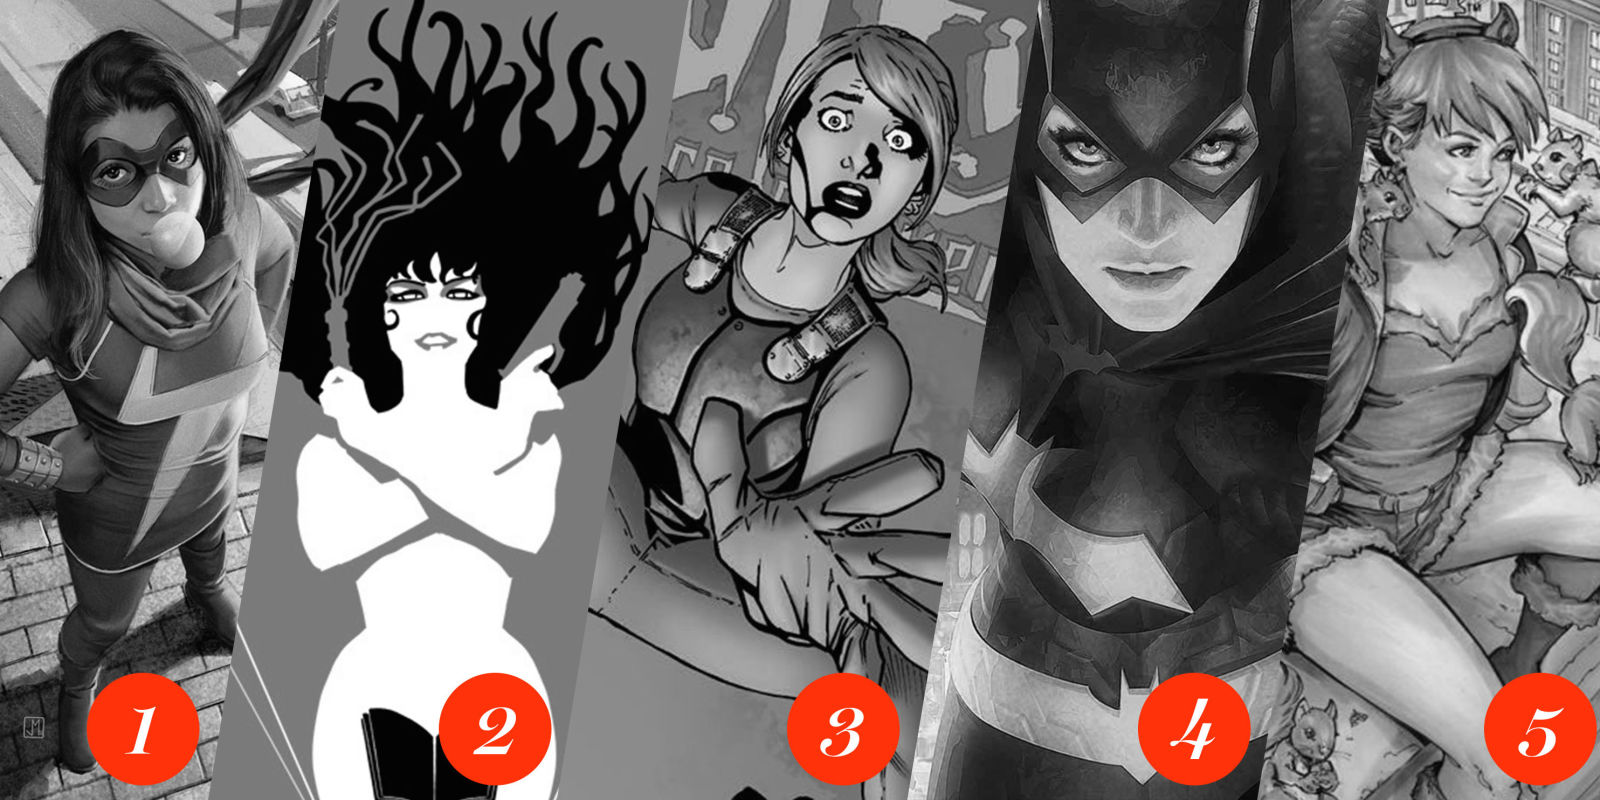 Drawn music comic book character Ranking Superheroes Best Female Feminist